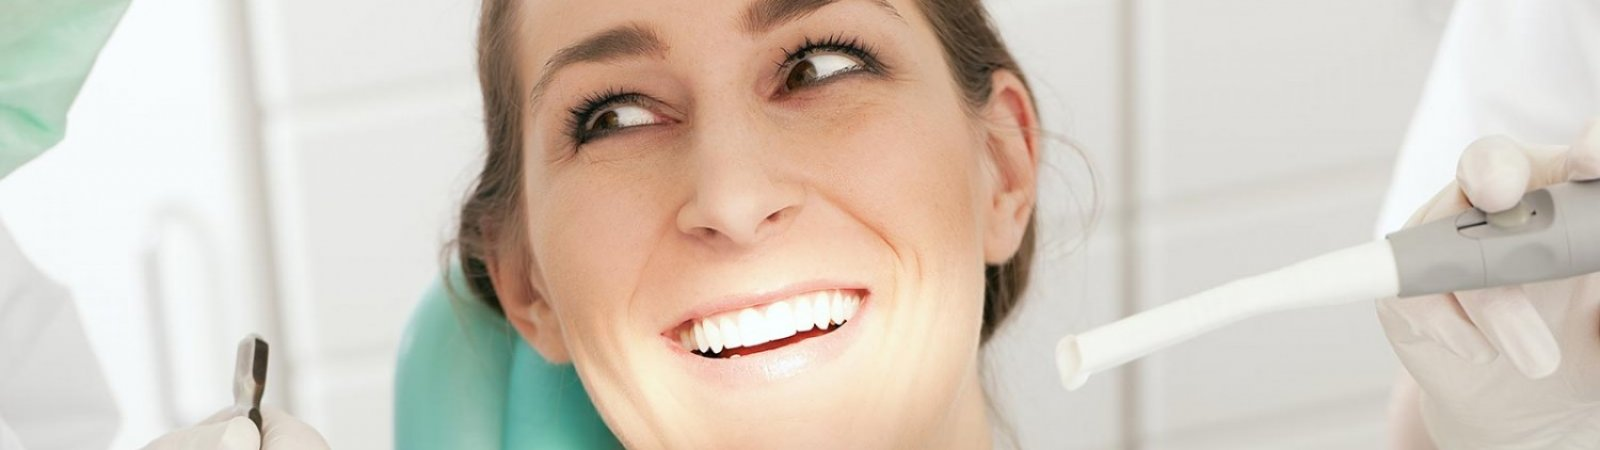 Relieving Dental Anxiety